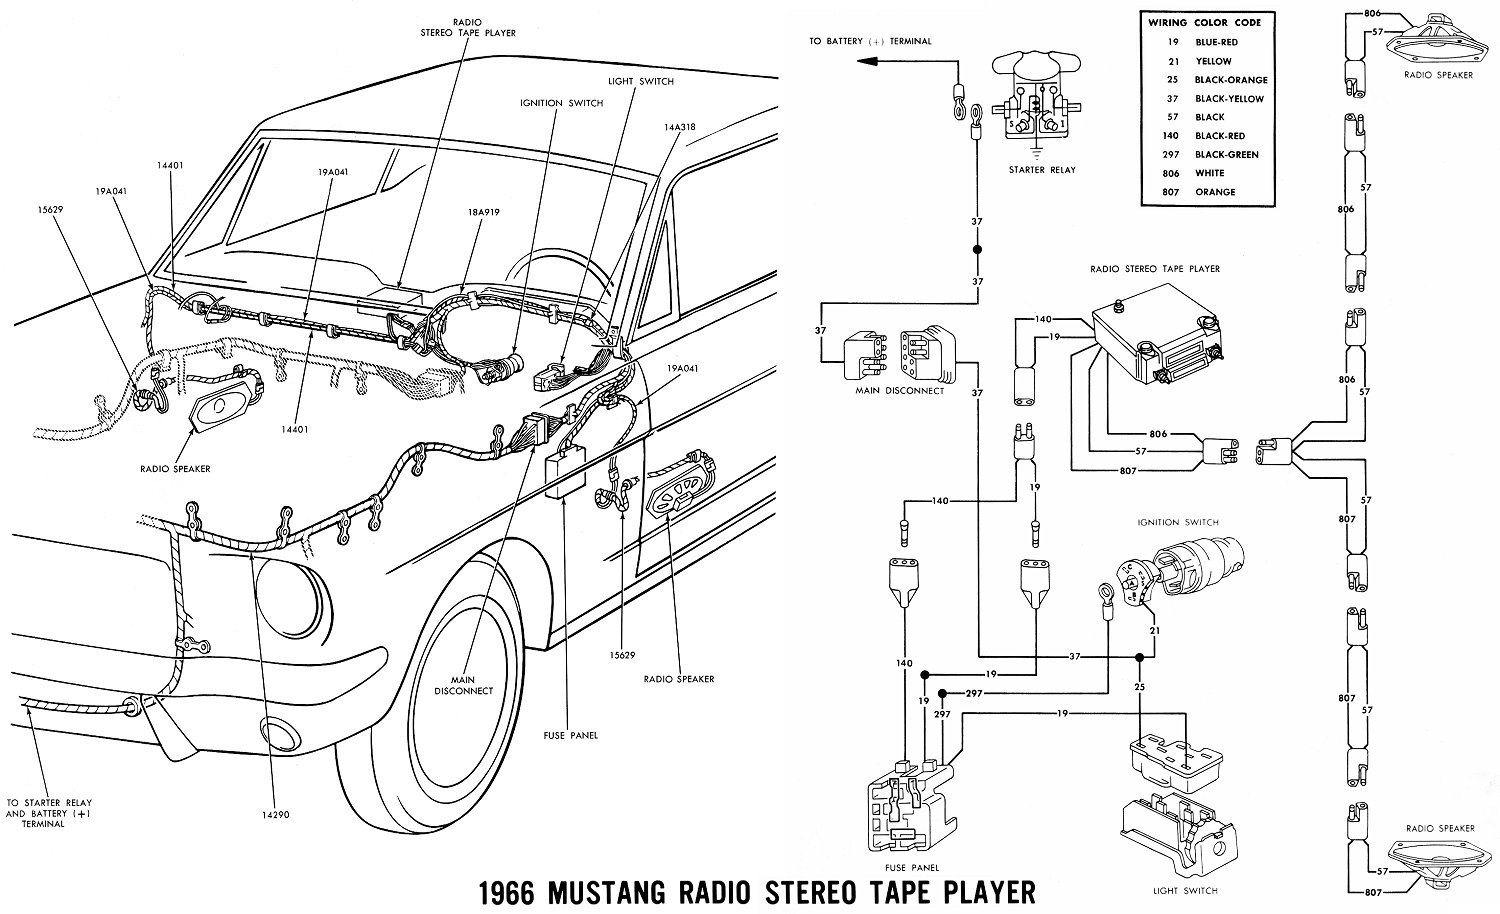 1966 mustang wiring diagrams average joe restoration 1966 mustang radio stereo tape player